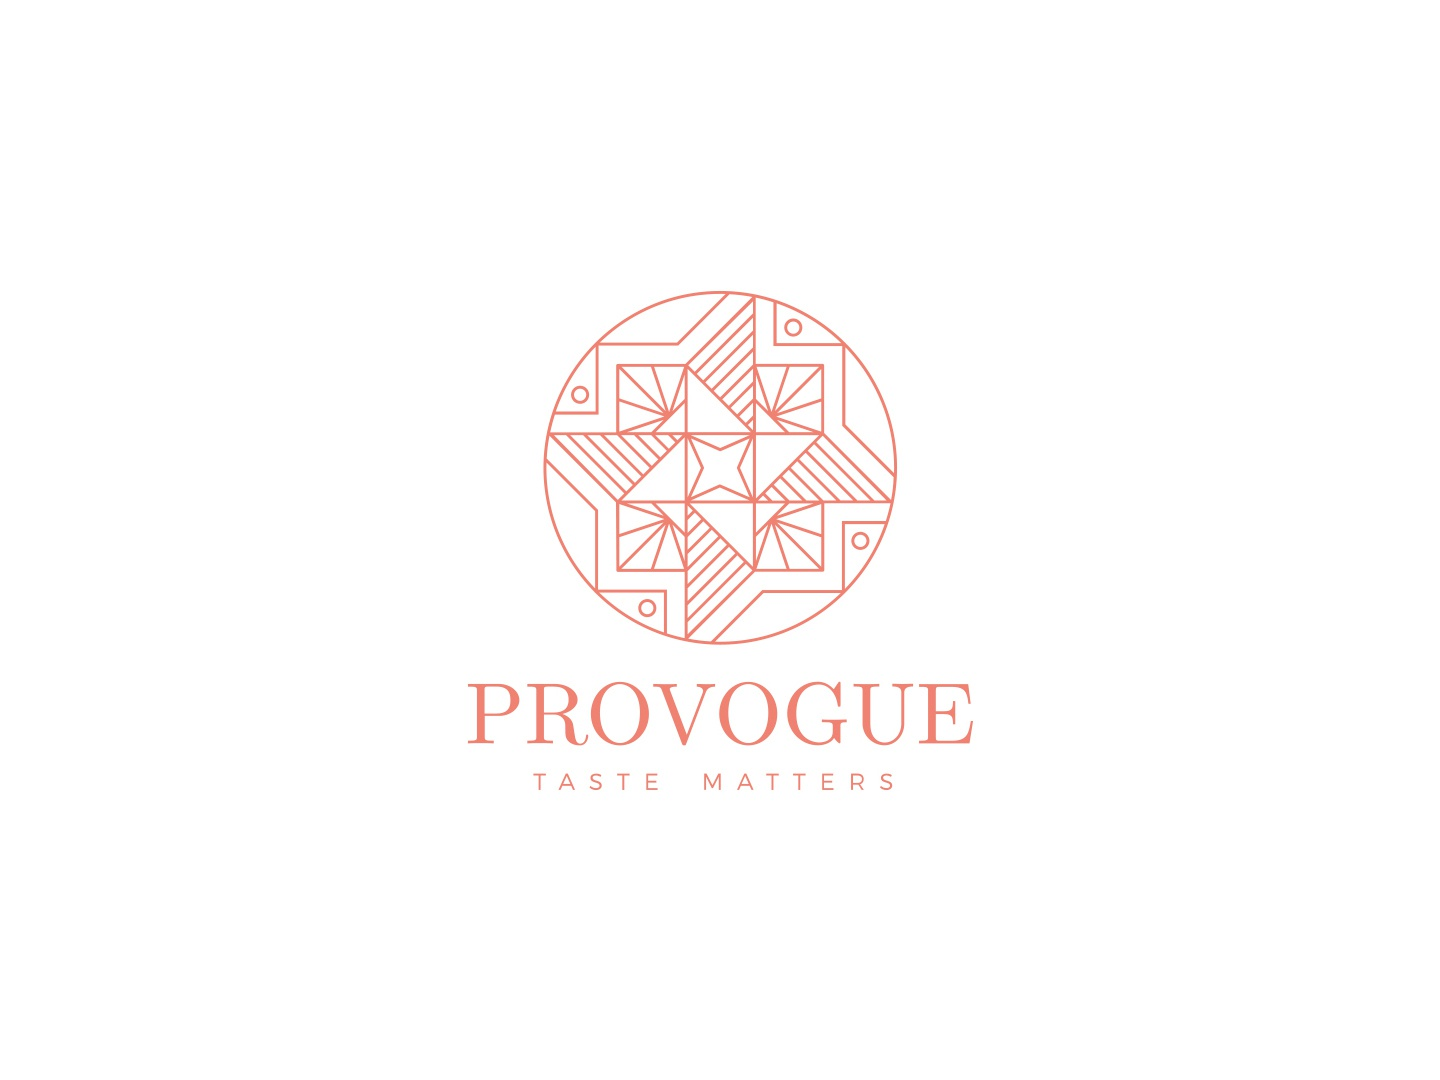 provogue taste matters abstract logo